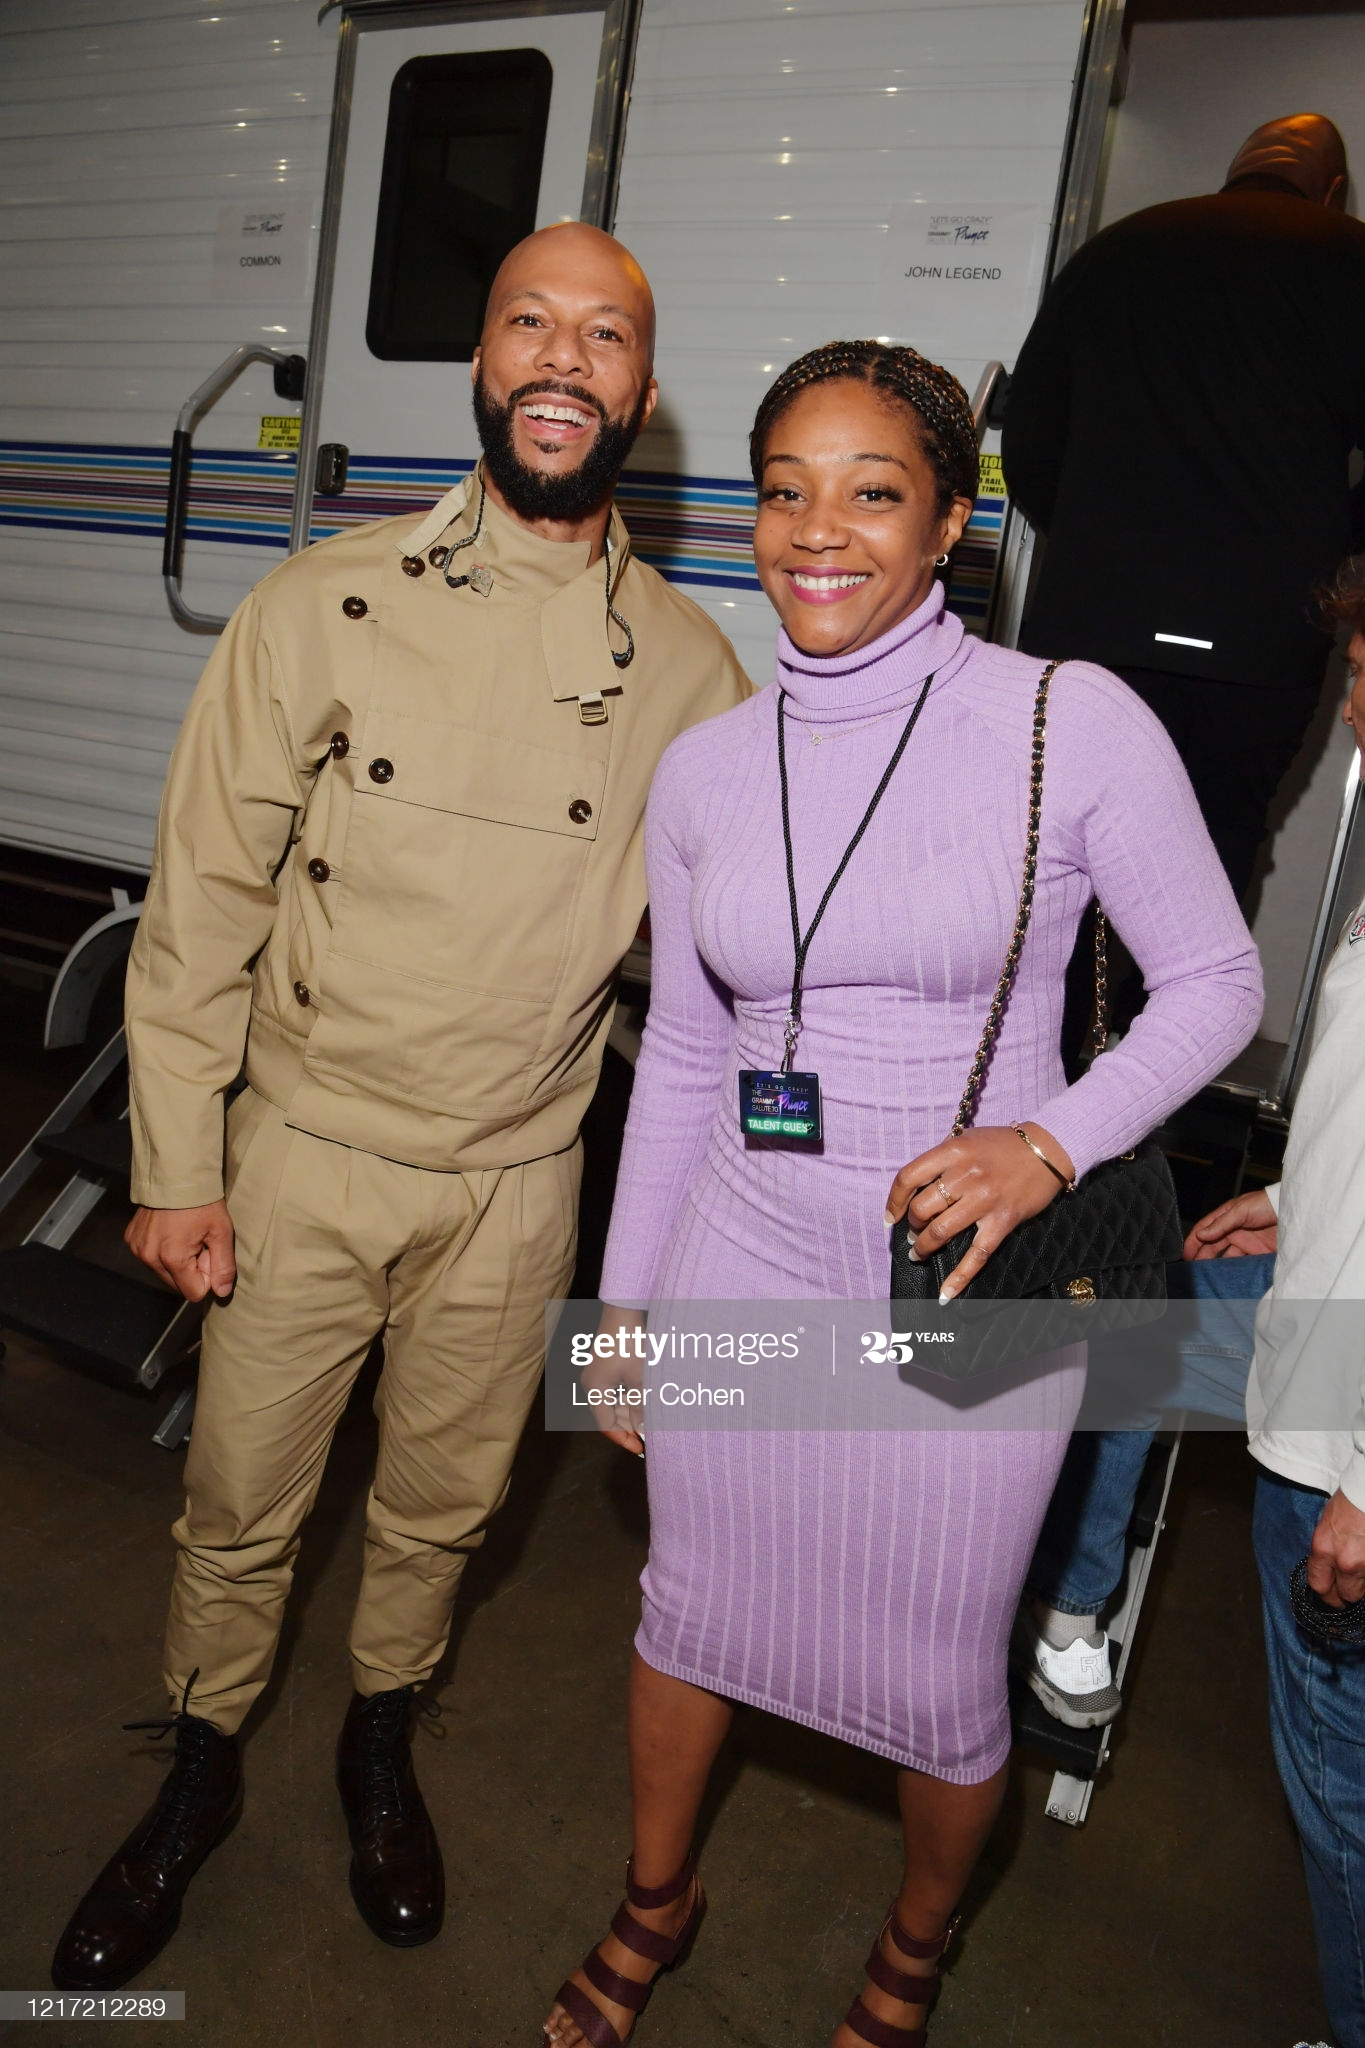 tiffany-haddish-and-common-boyfriend-husband-dating-relationship